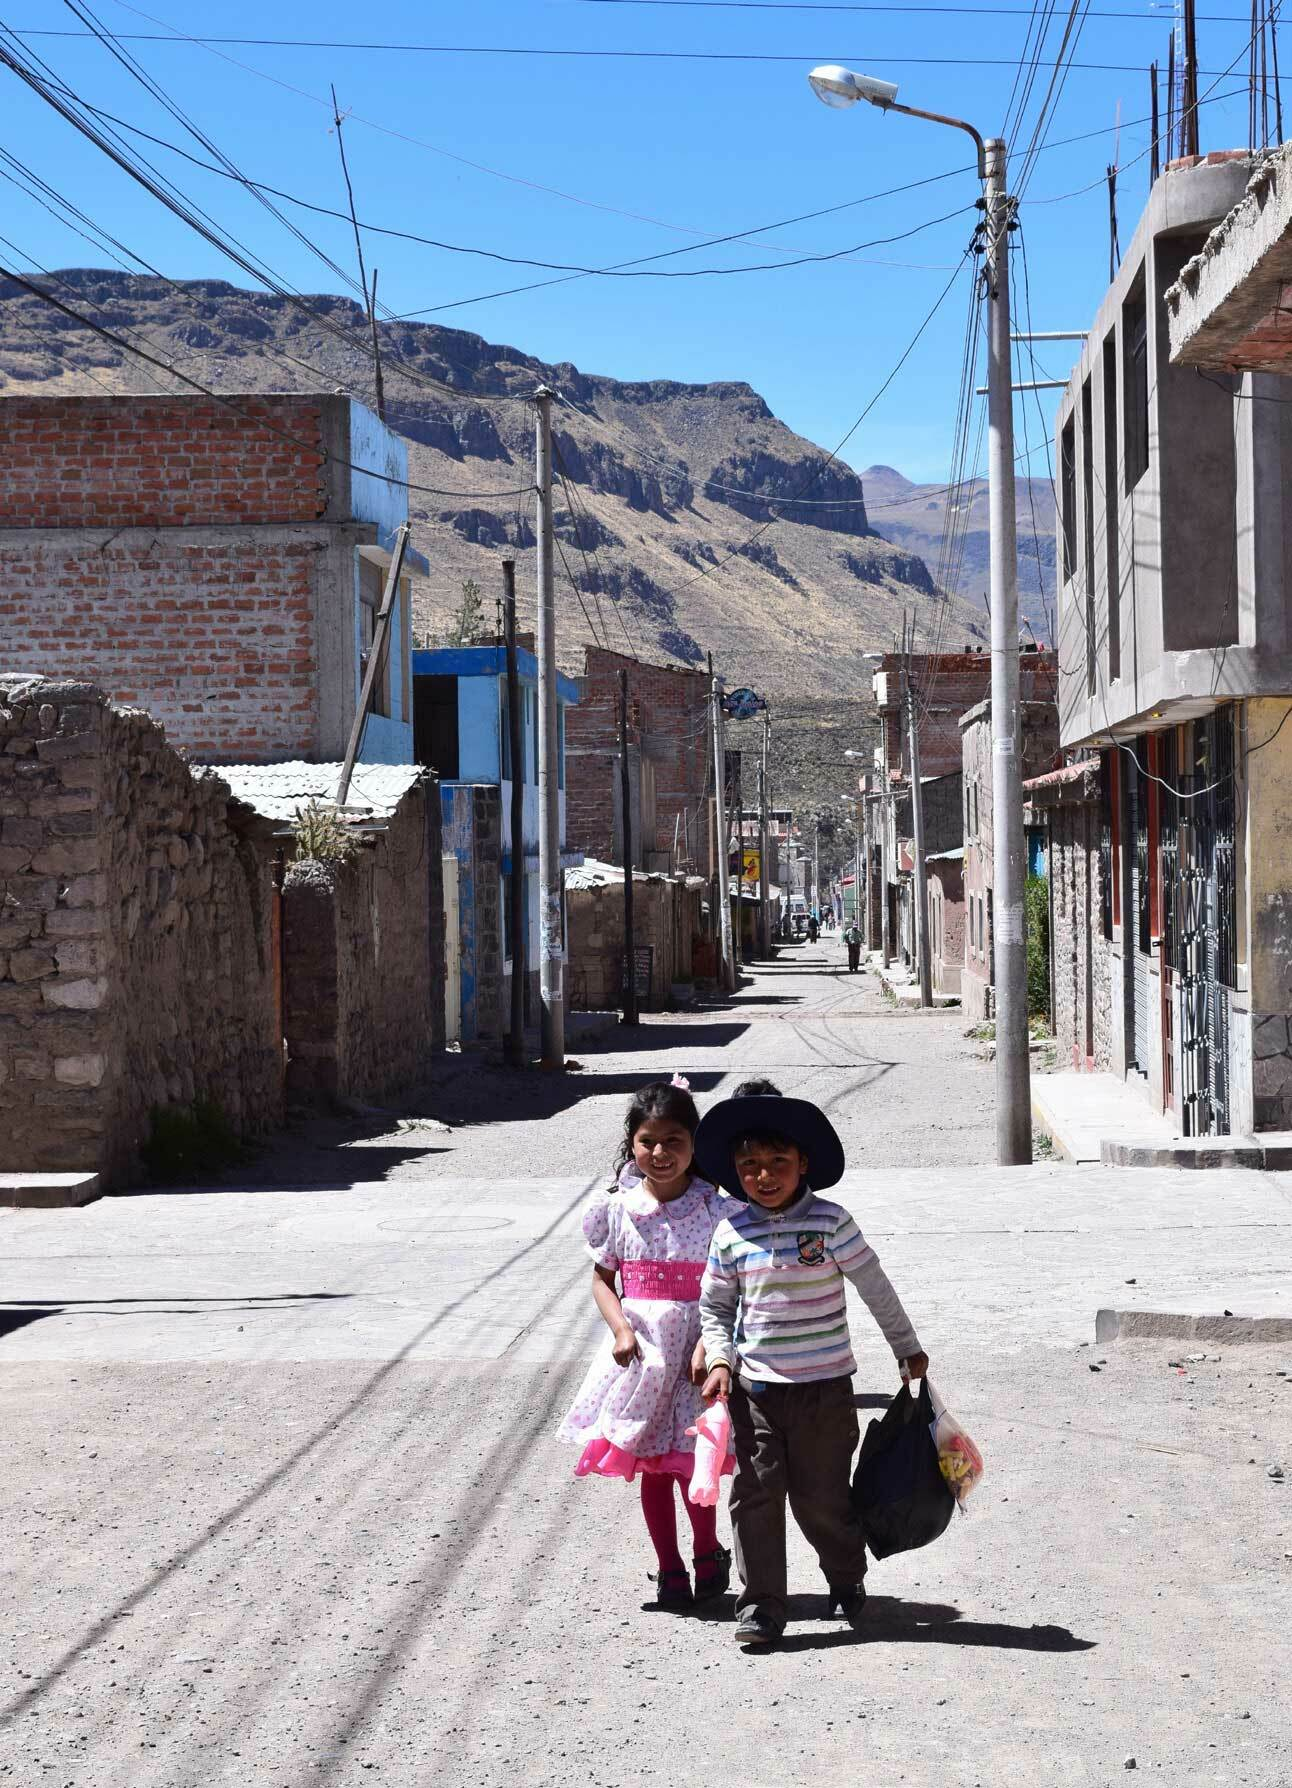 Two children smile as they walk down a narrow village street.